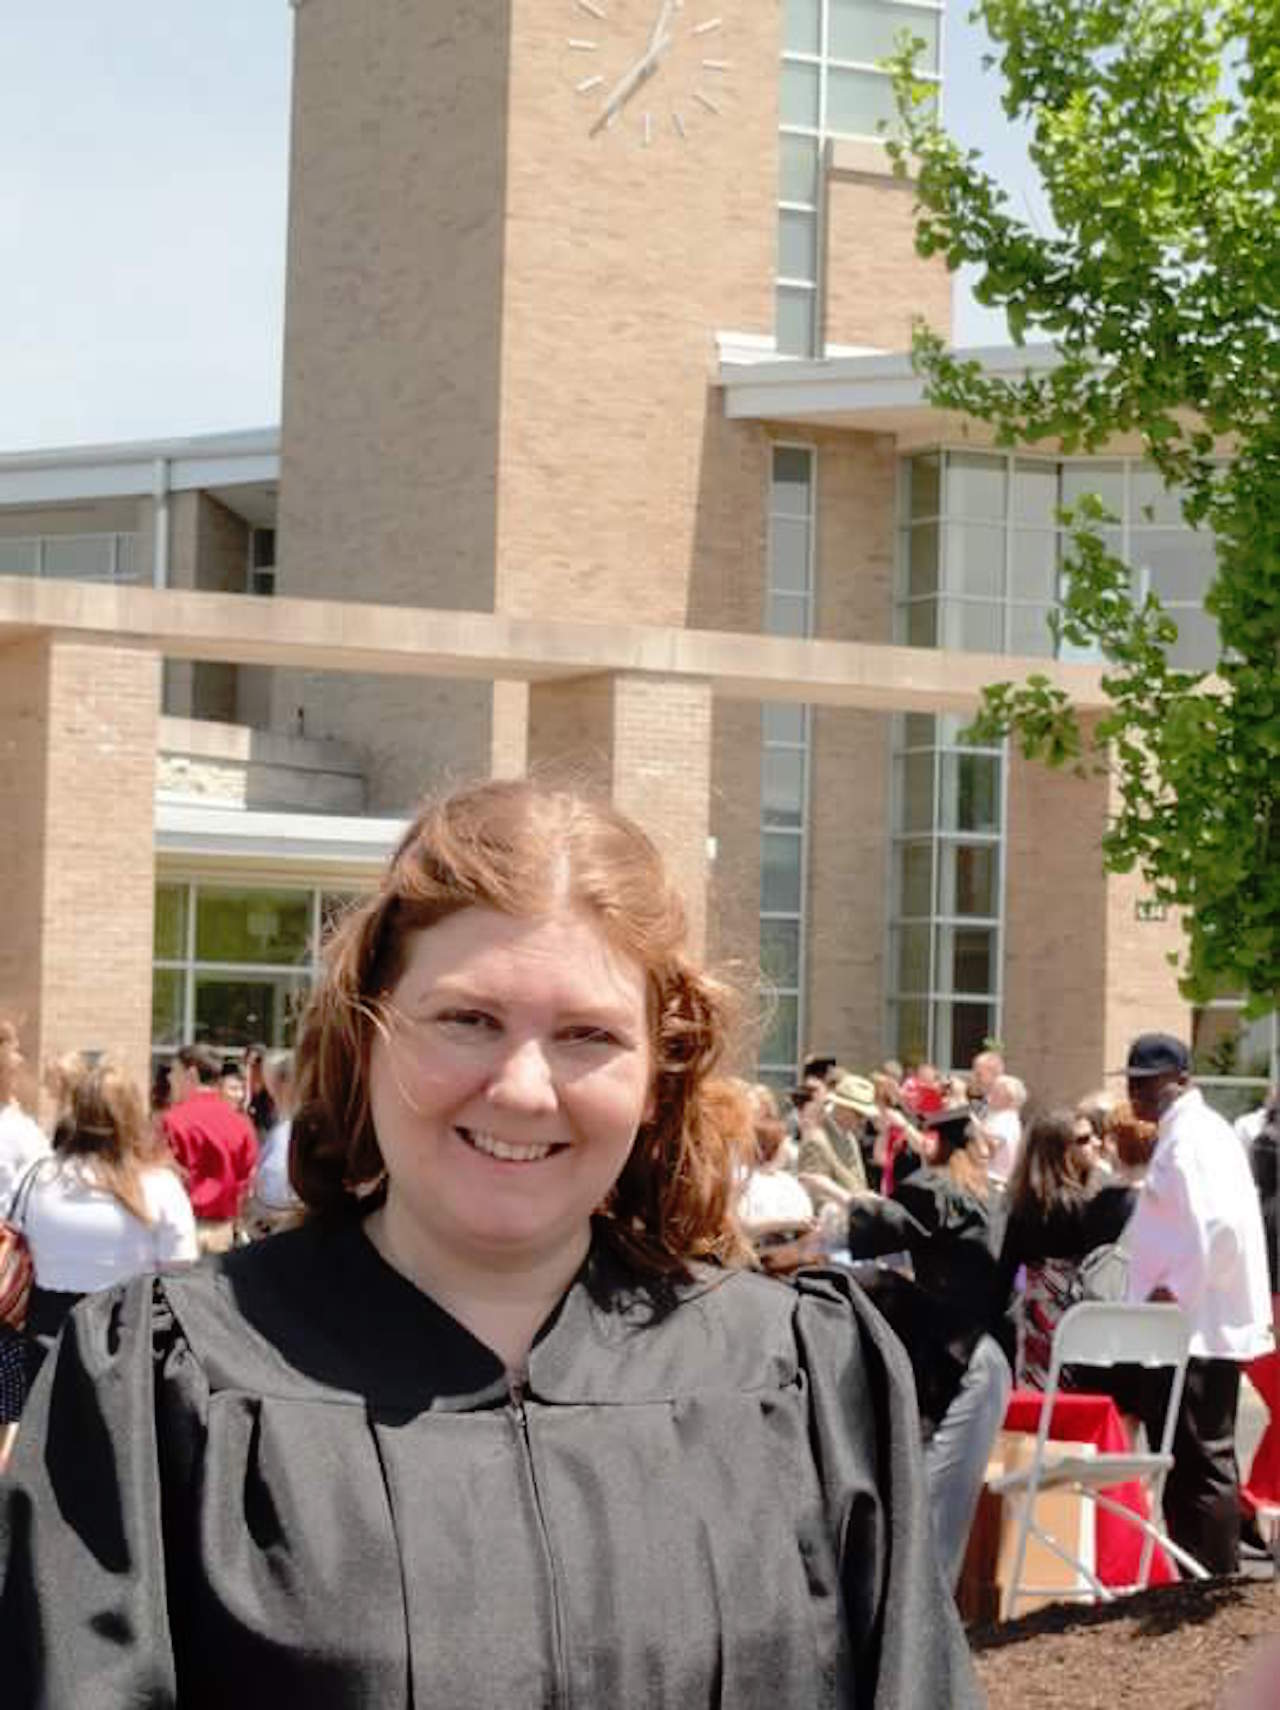 woman with a learning disability at graduation